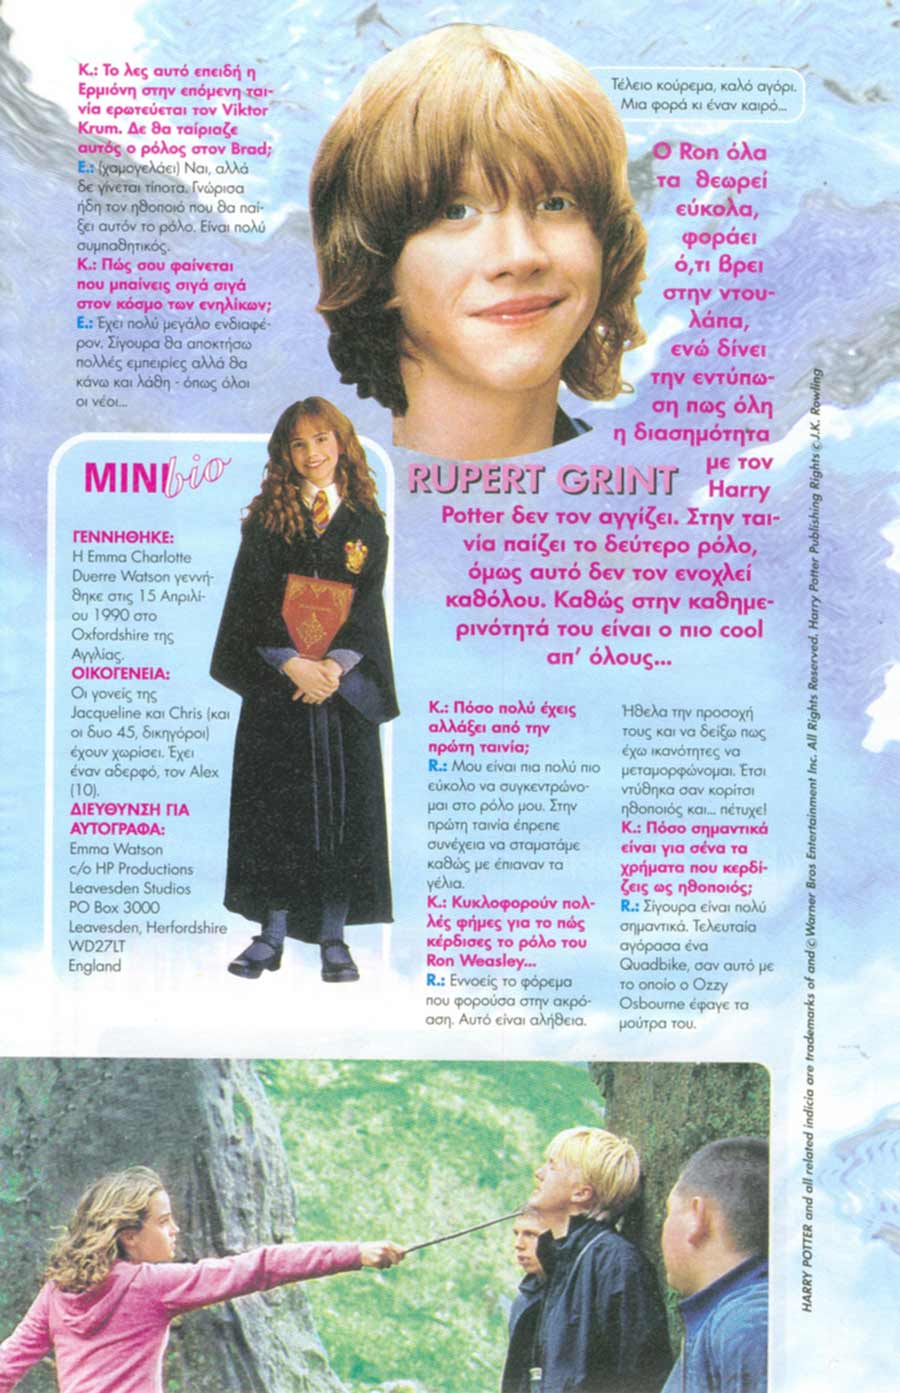 KaterinaMag_gr_Sep2004_p5